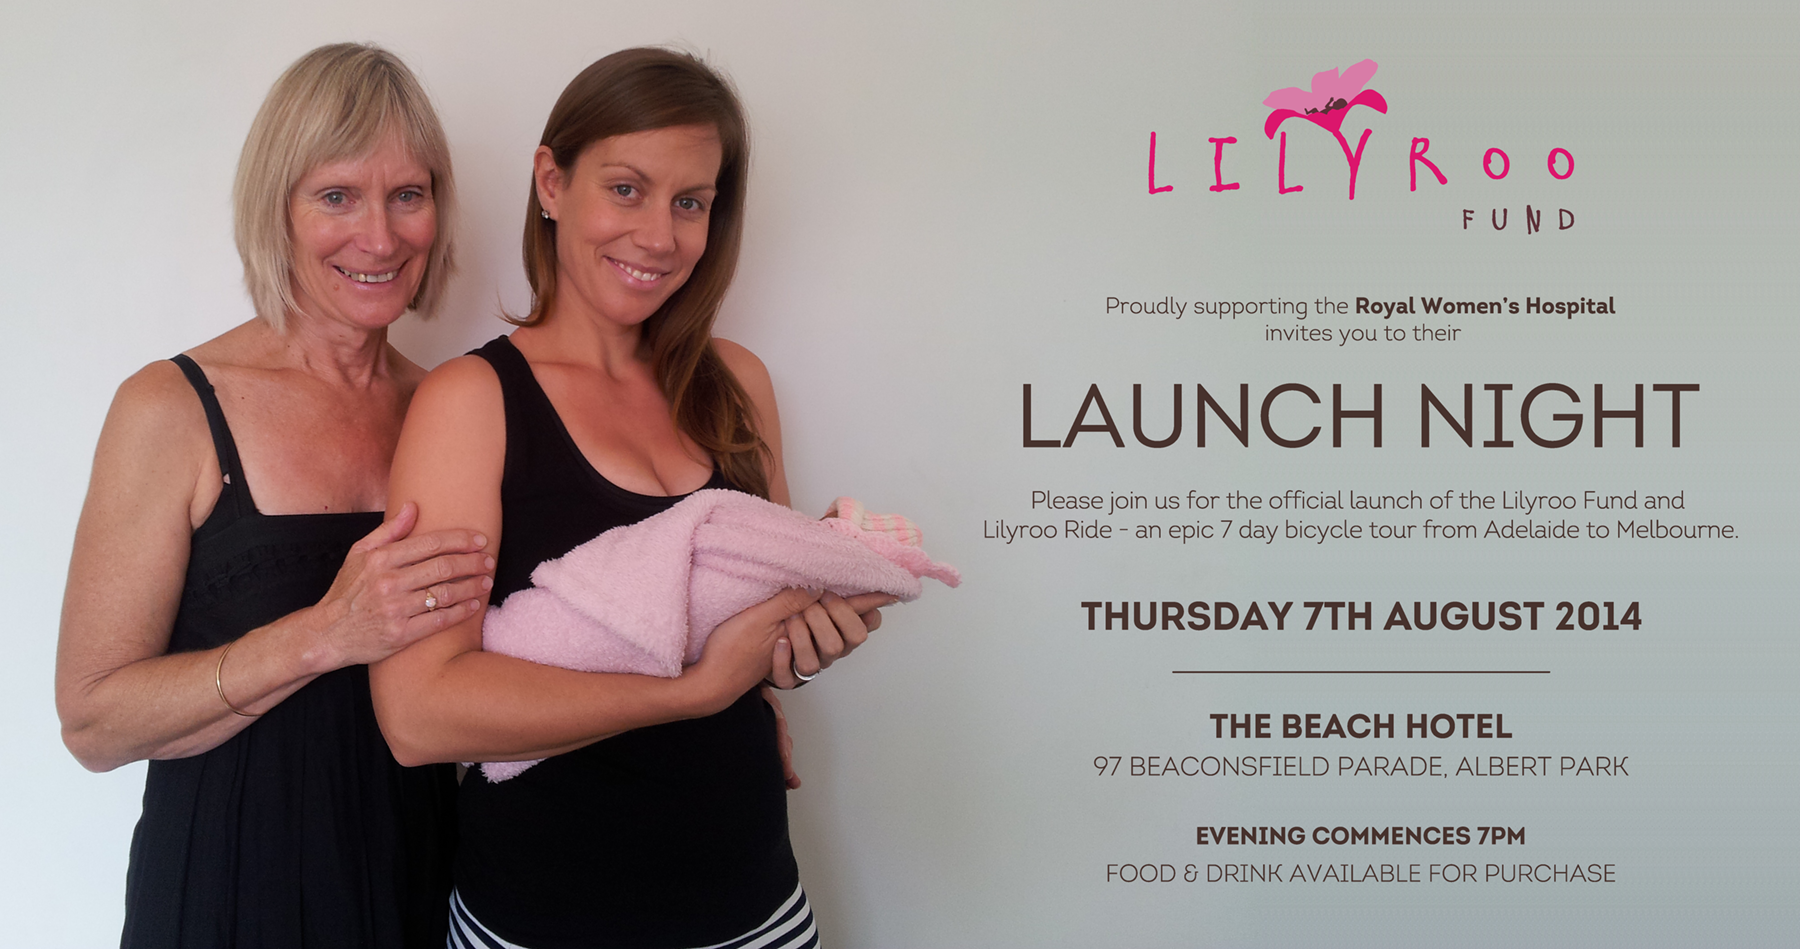 Lilyroo Fund launch night poster